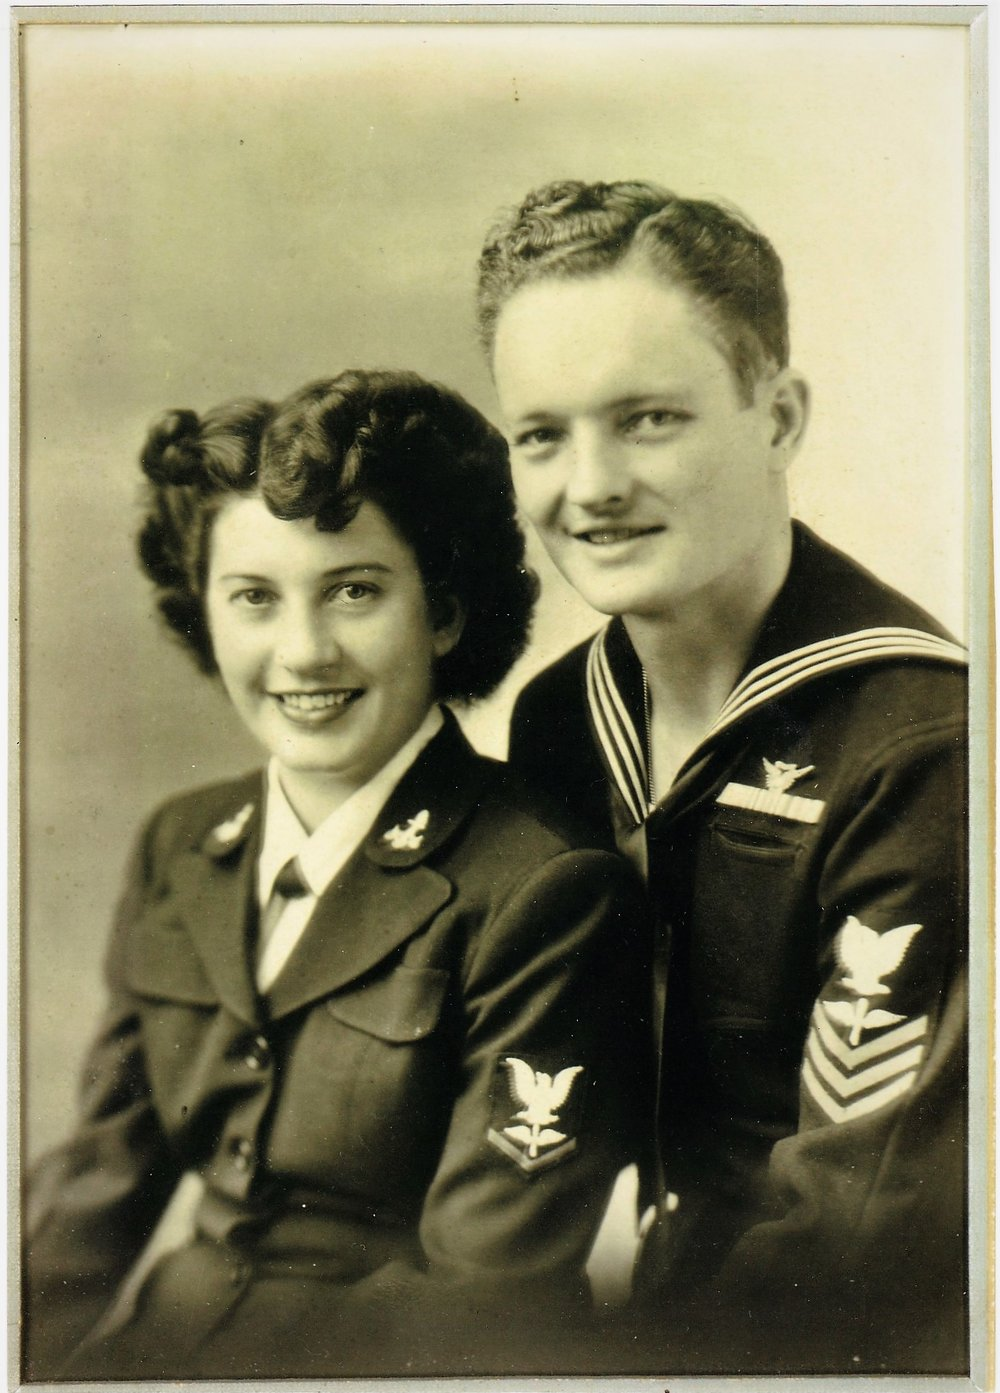 Gerry and Bill McKinley during their time in the Navy